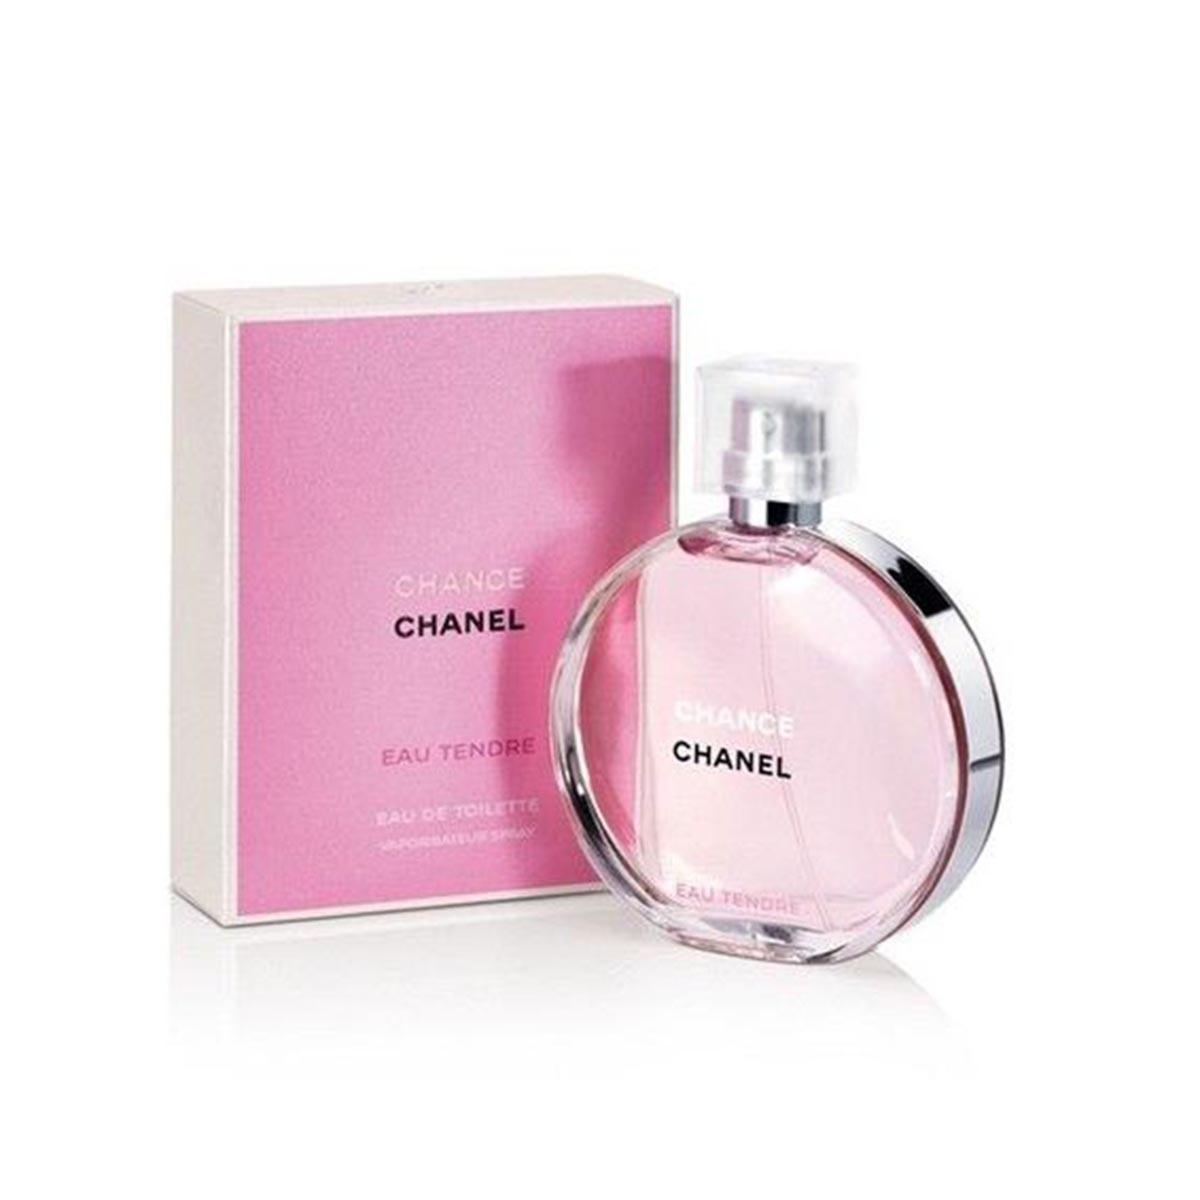 Chanel fragrances Chance Eau Tendre Eau De Toilette 150ml